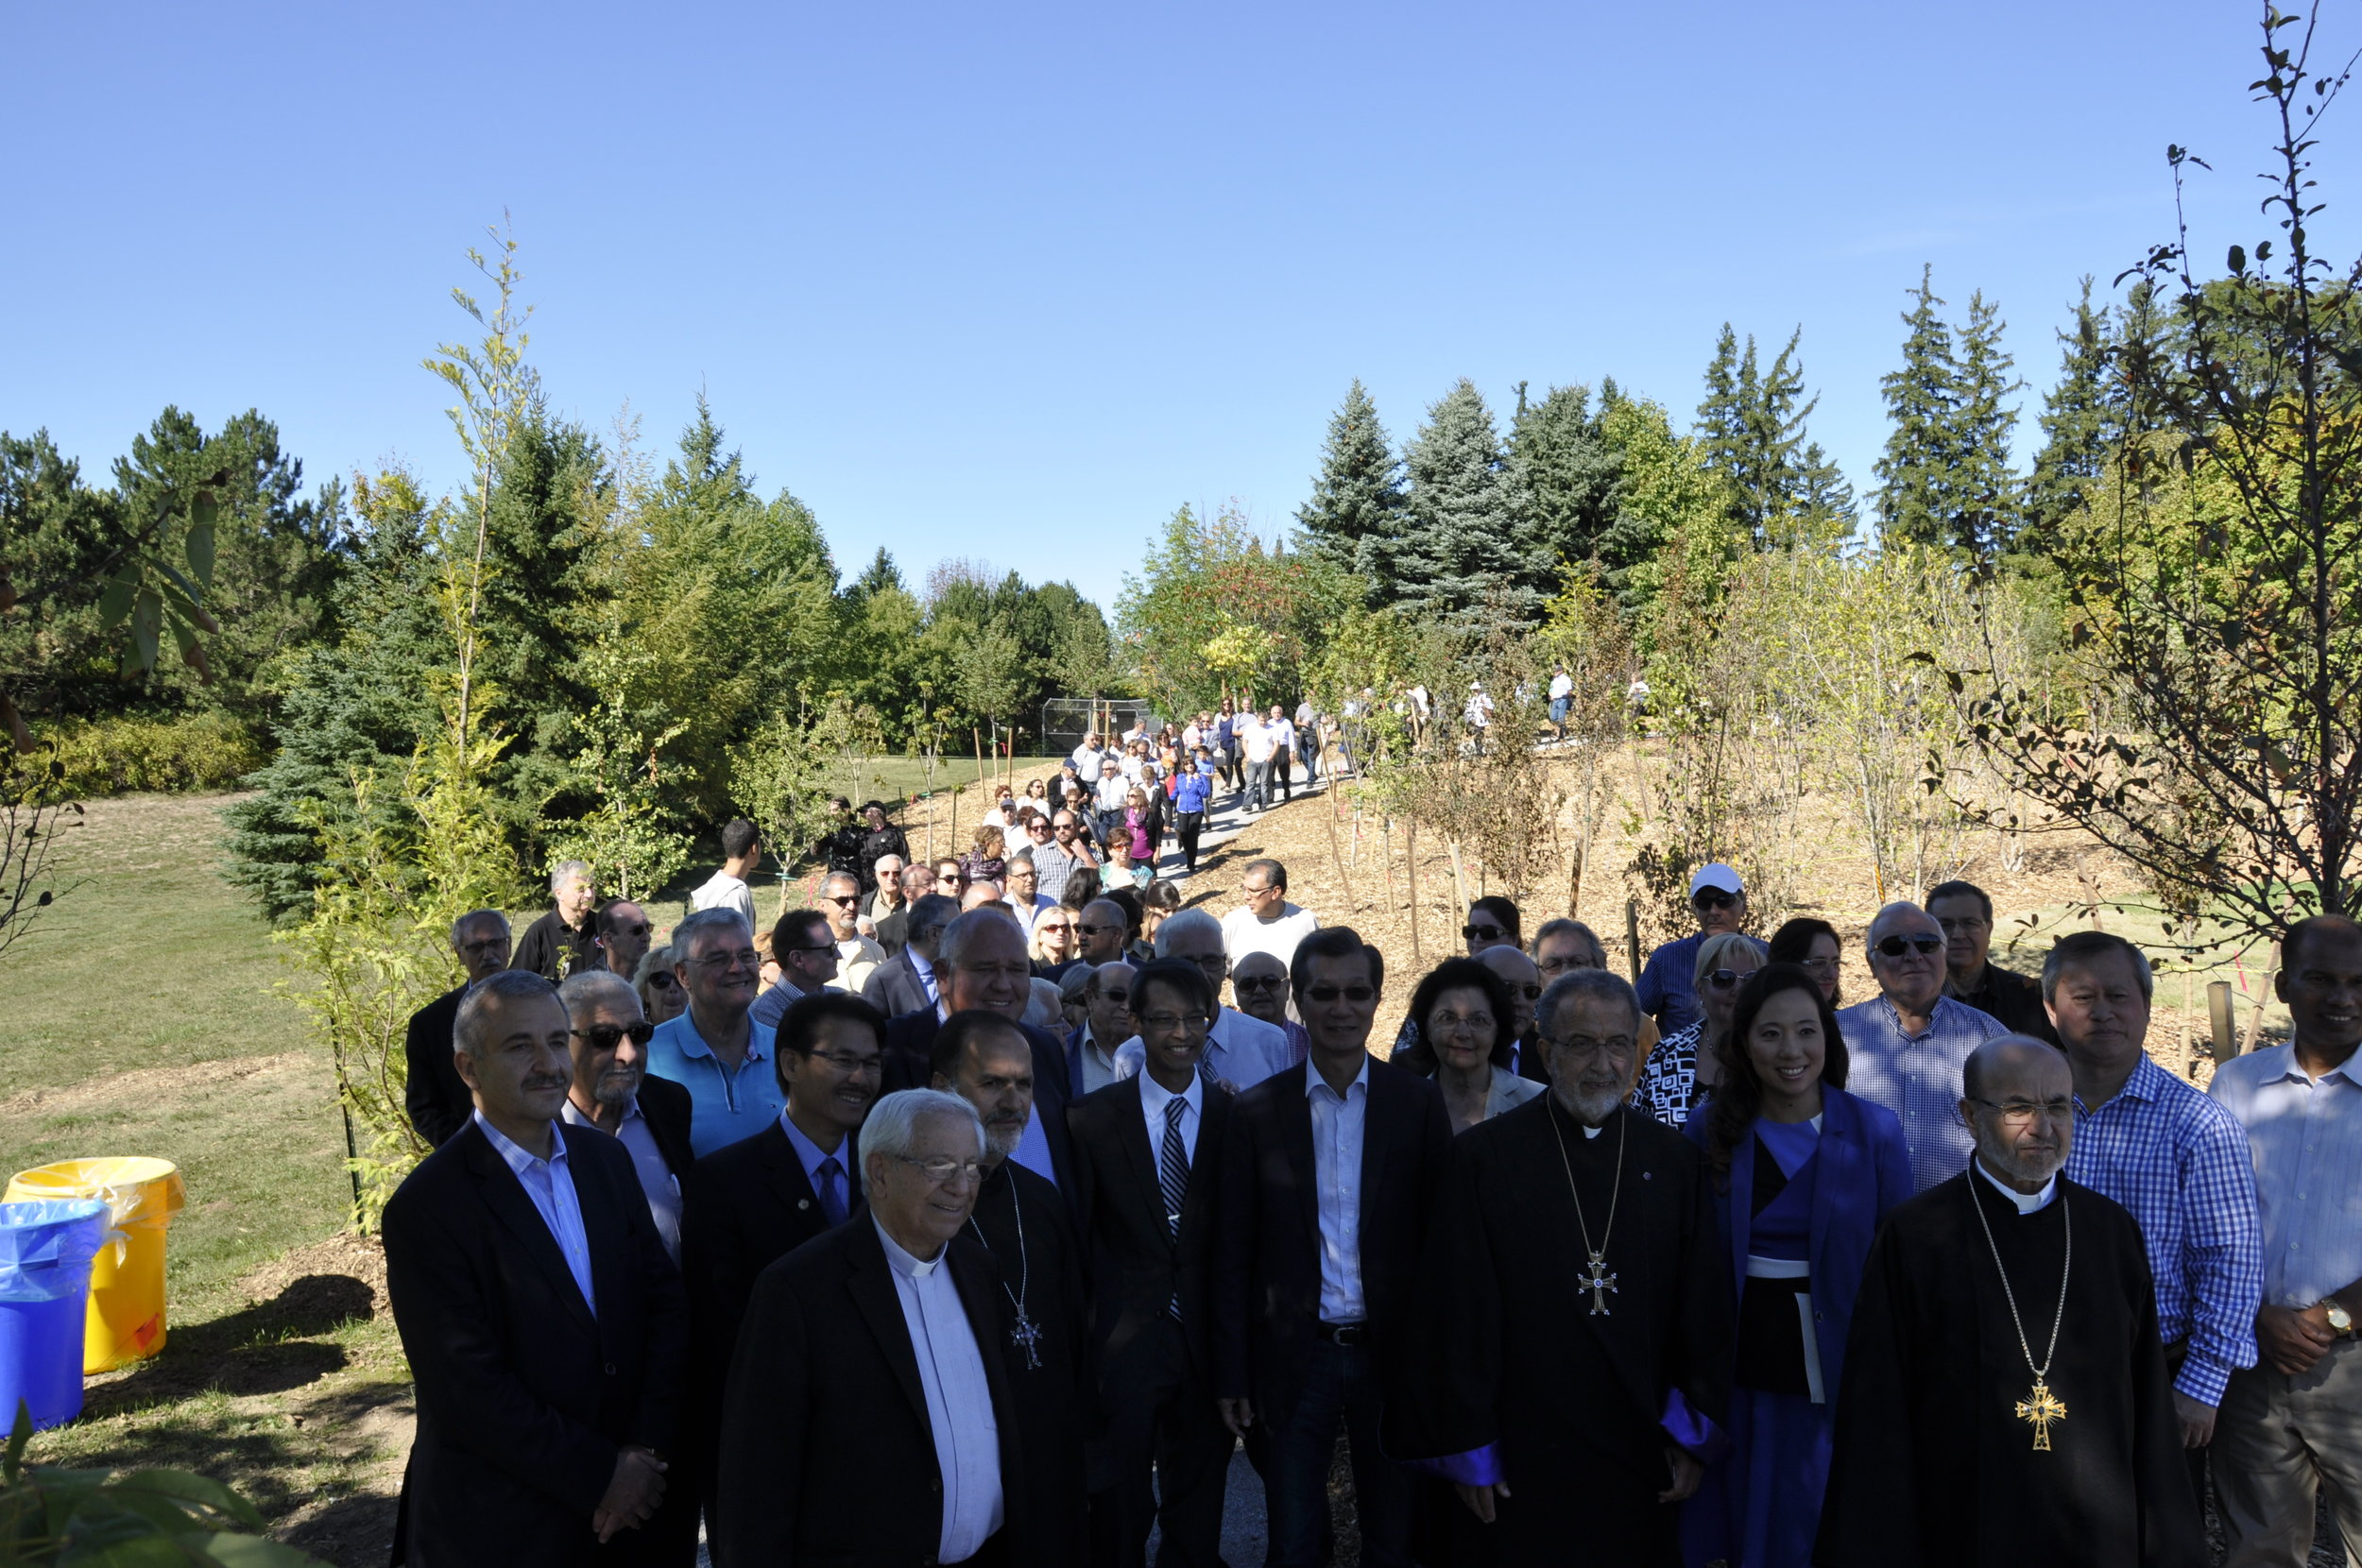 Image-5a-Community-Members-on-the-Inaugural-Walk-through-the-Forest.jpg